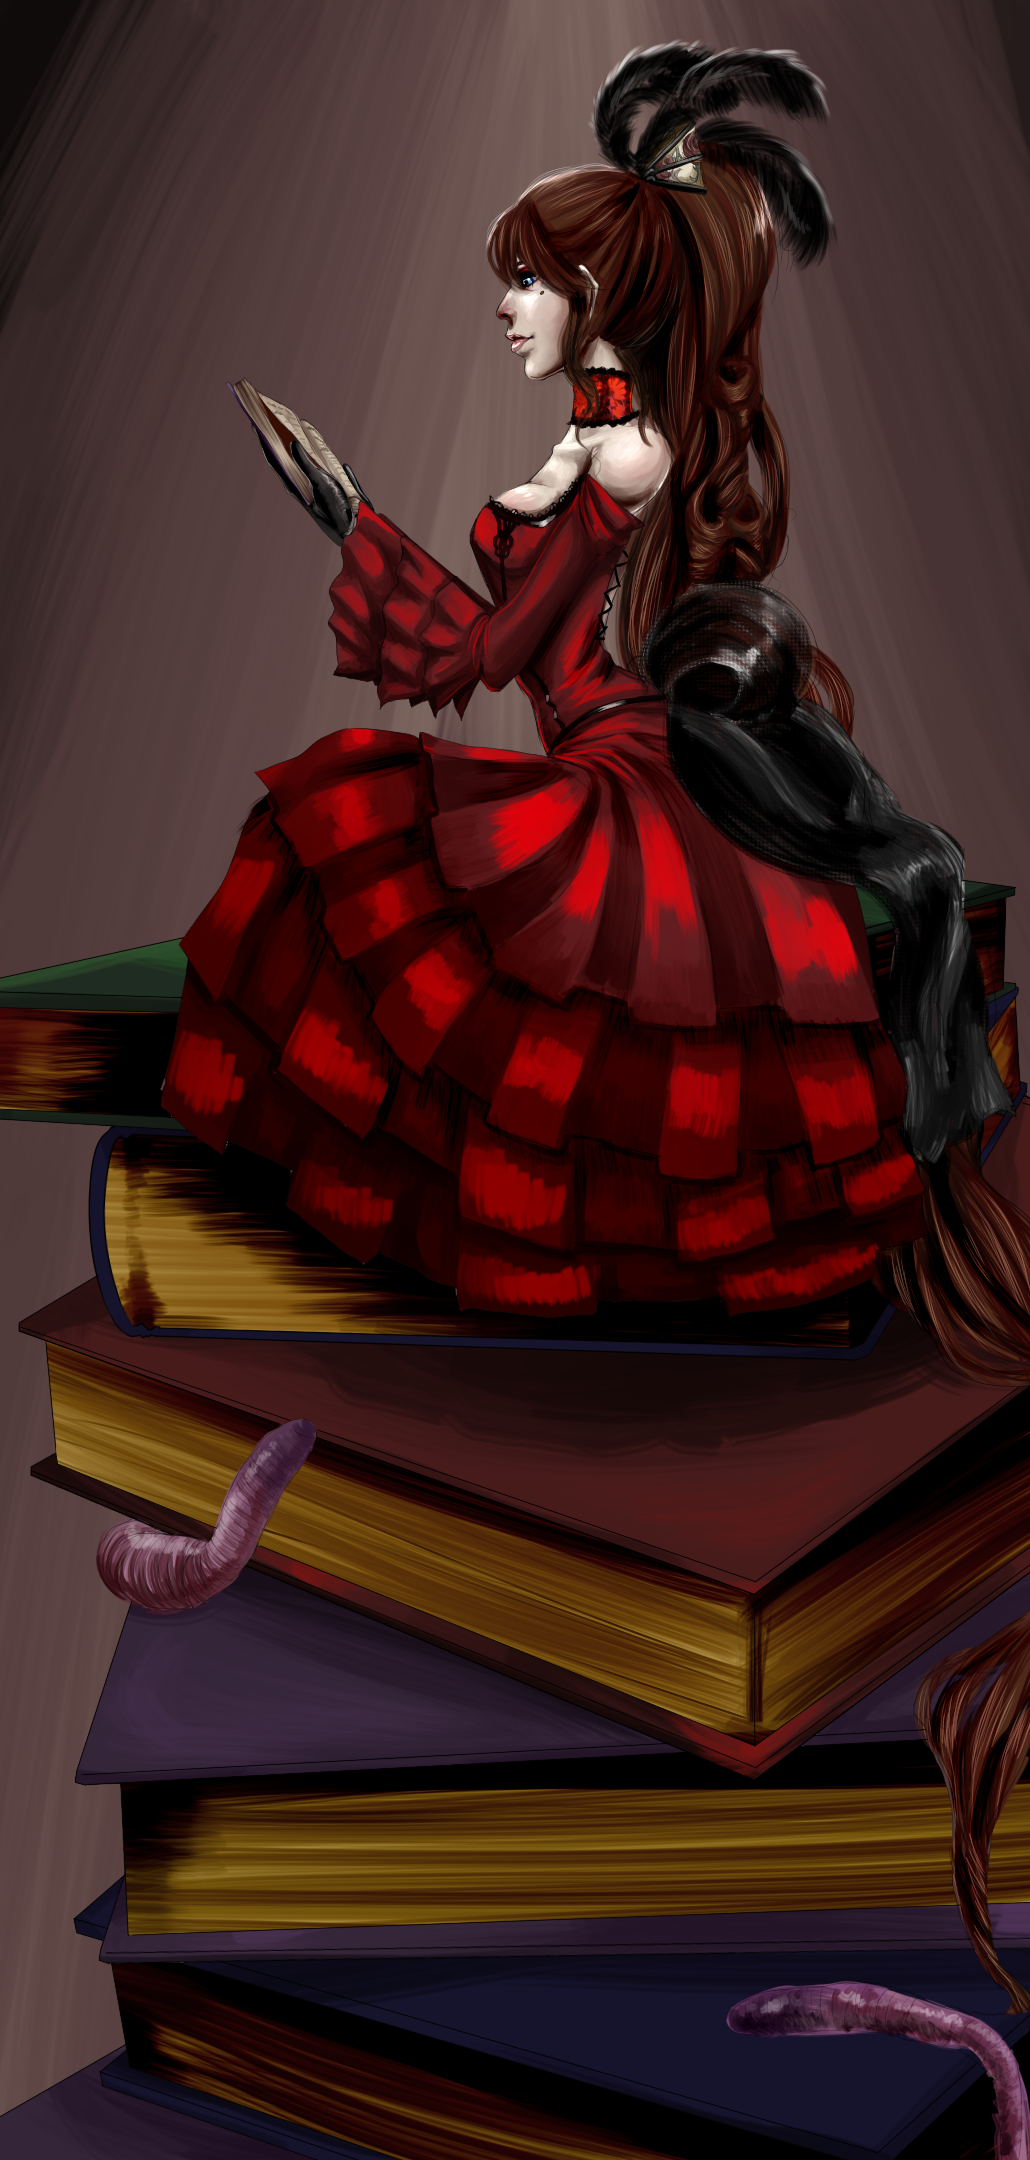 Book Worm by Berserk-Cyborg-Panda